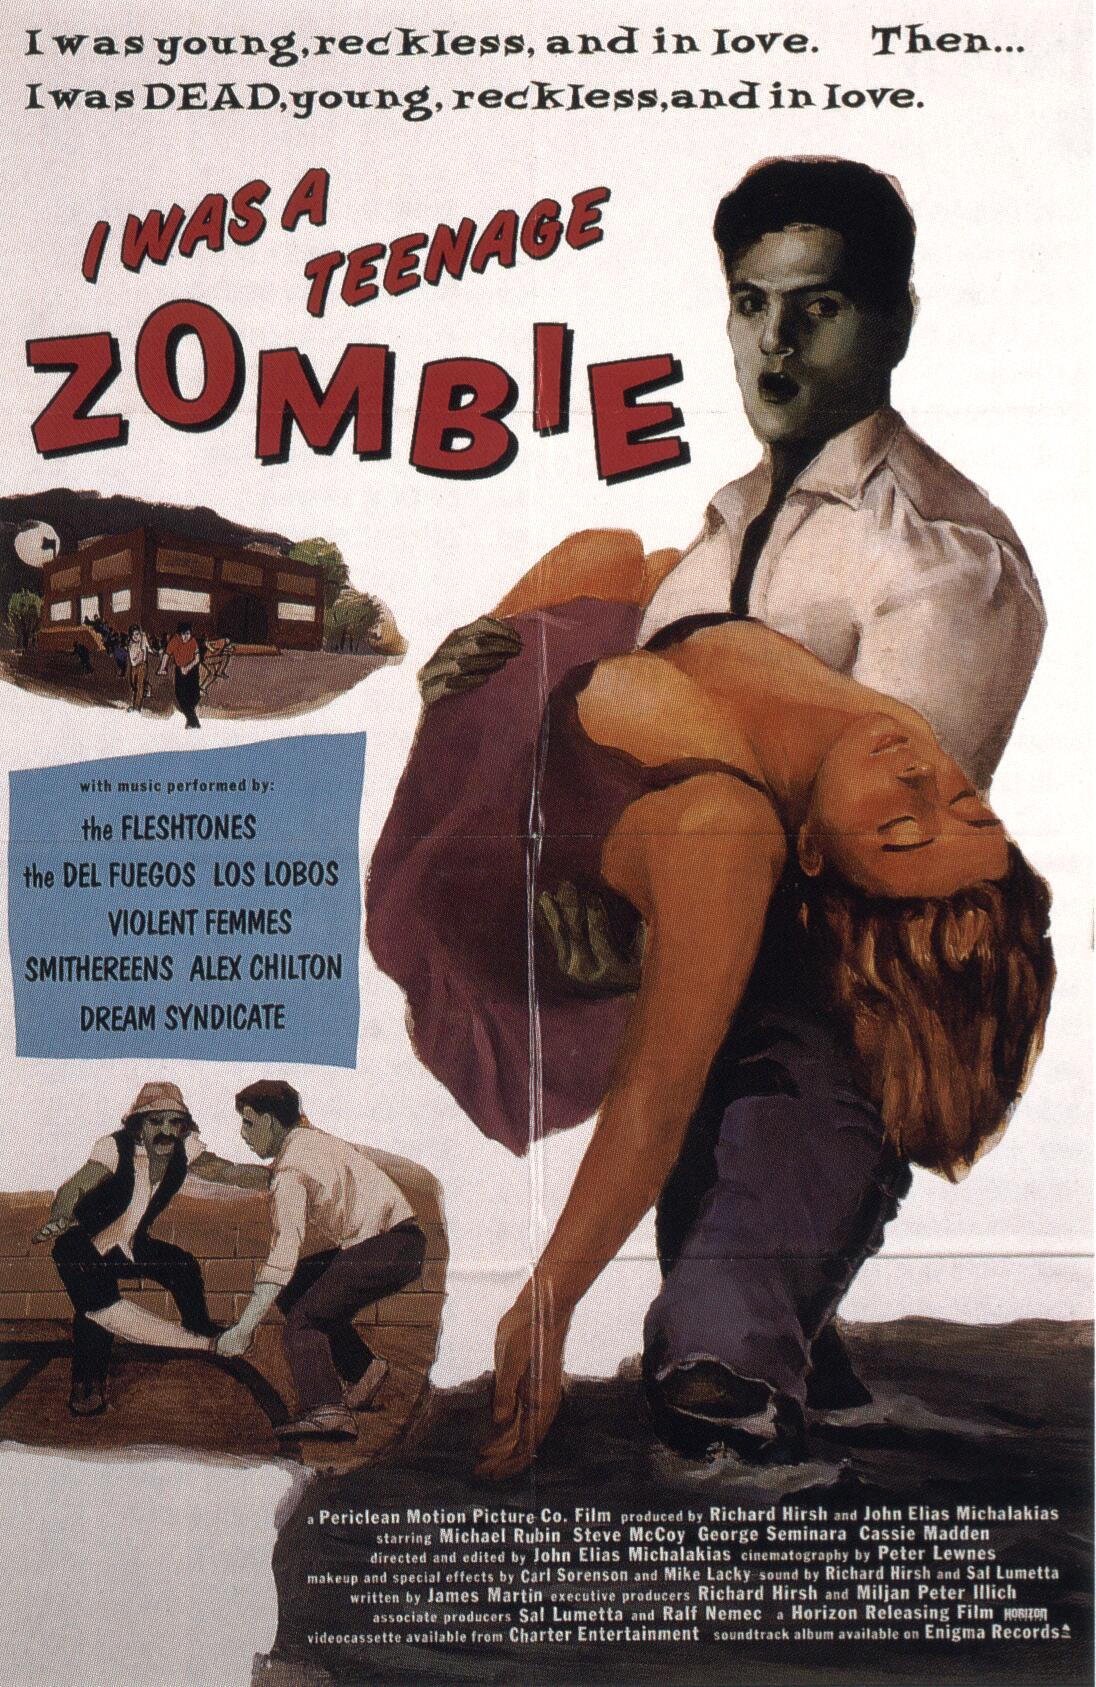 I-WAS-A-TEENAGE-ZOMBIE-movie-poster